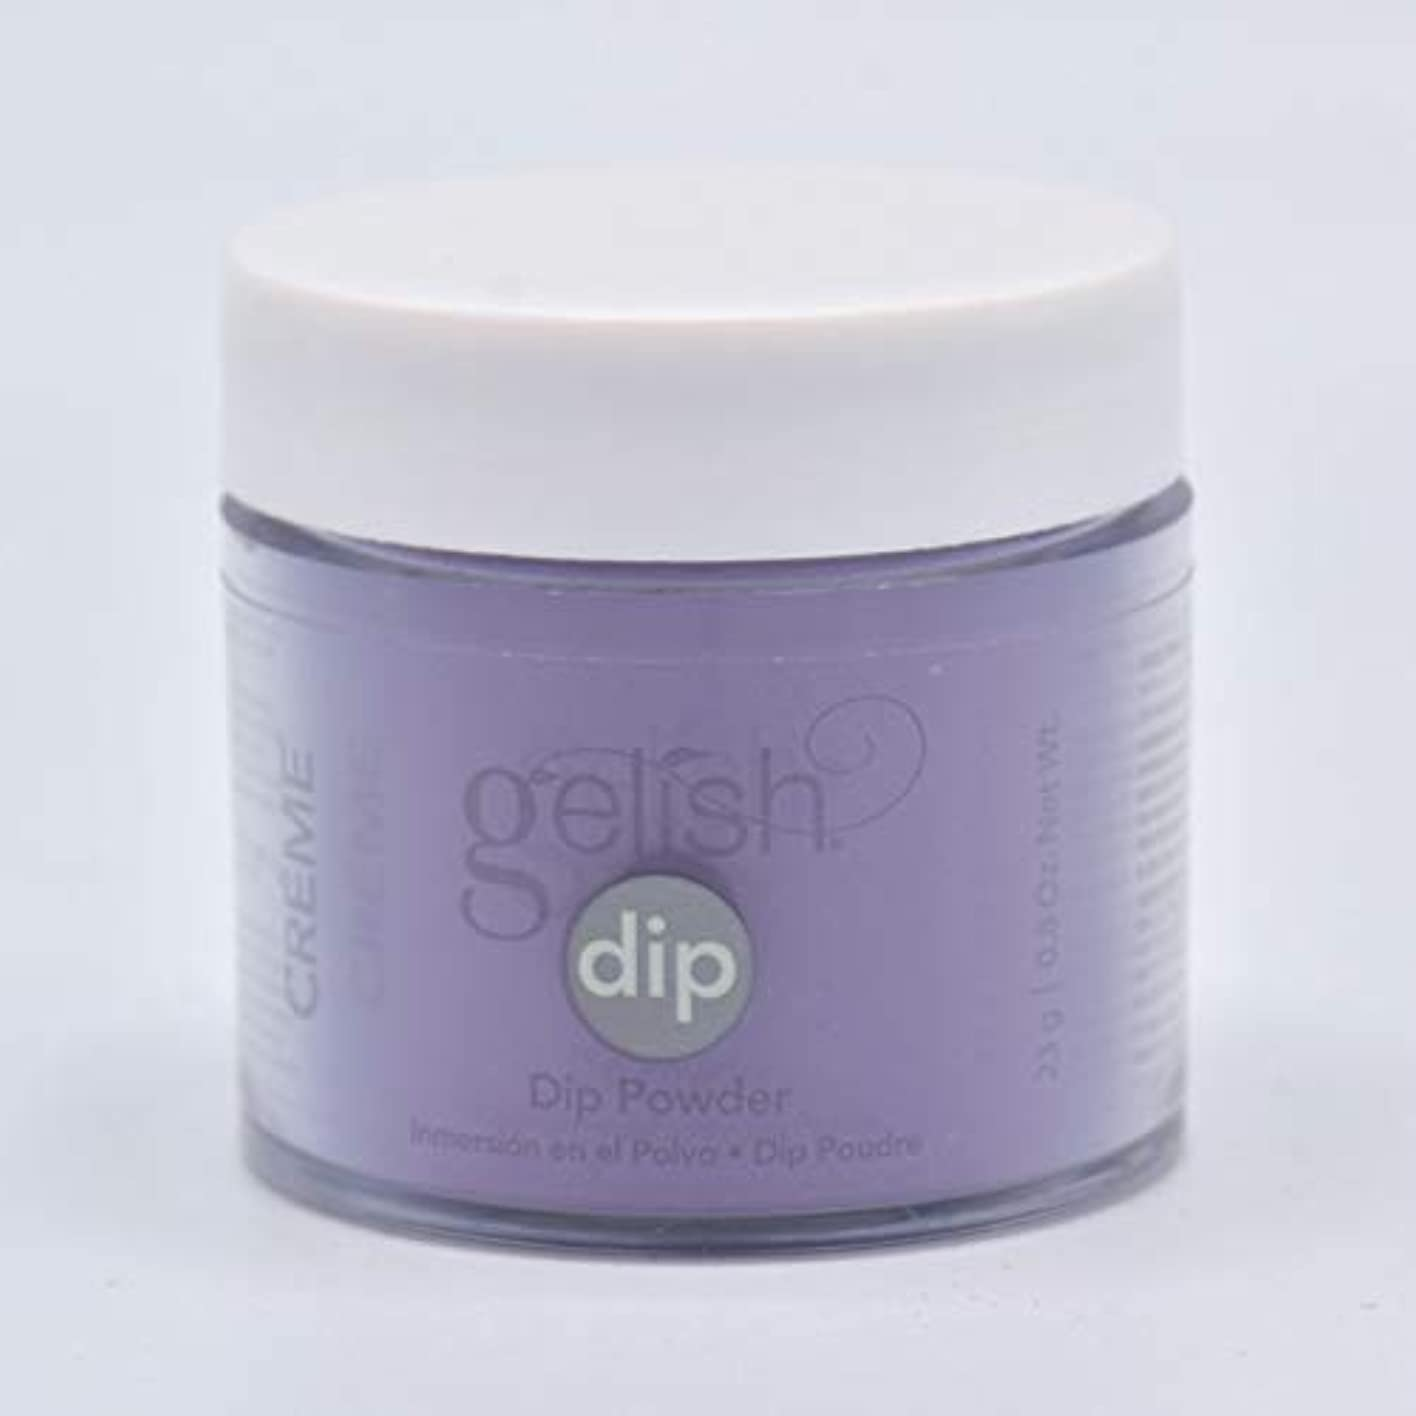 動機付ける名目上のアスレチックHarmony Gelish - Acrylic Dip Powder - Black Cherry Berry - 23g / 0.8oz